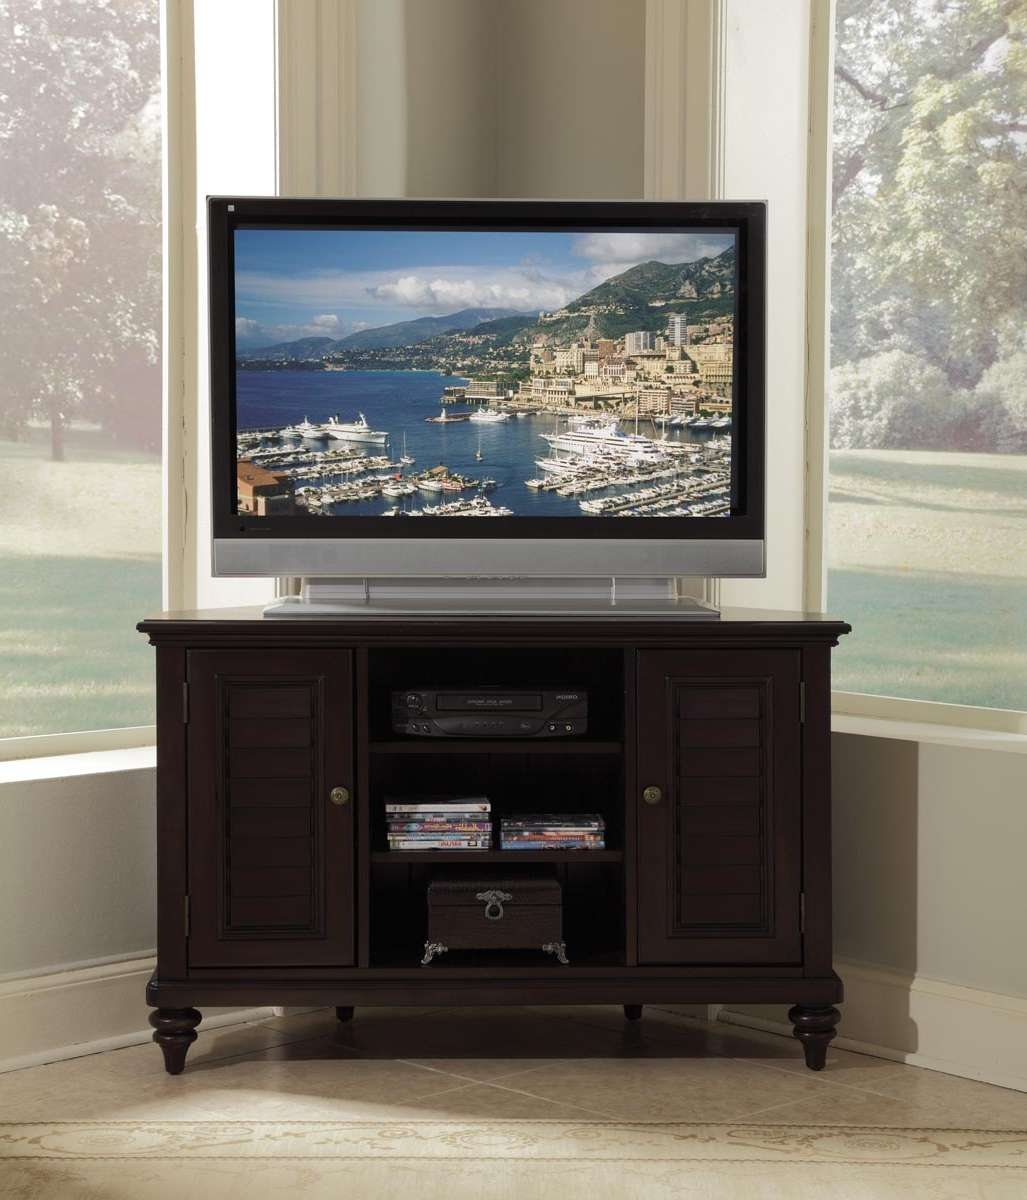 Tv Stand With Rounded Corners – Round Designs Regarding Tv Stands With Rounded Corners (View 10 of 15)